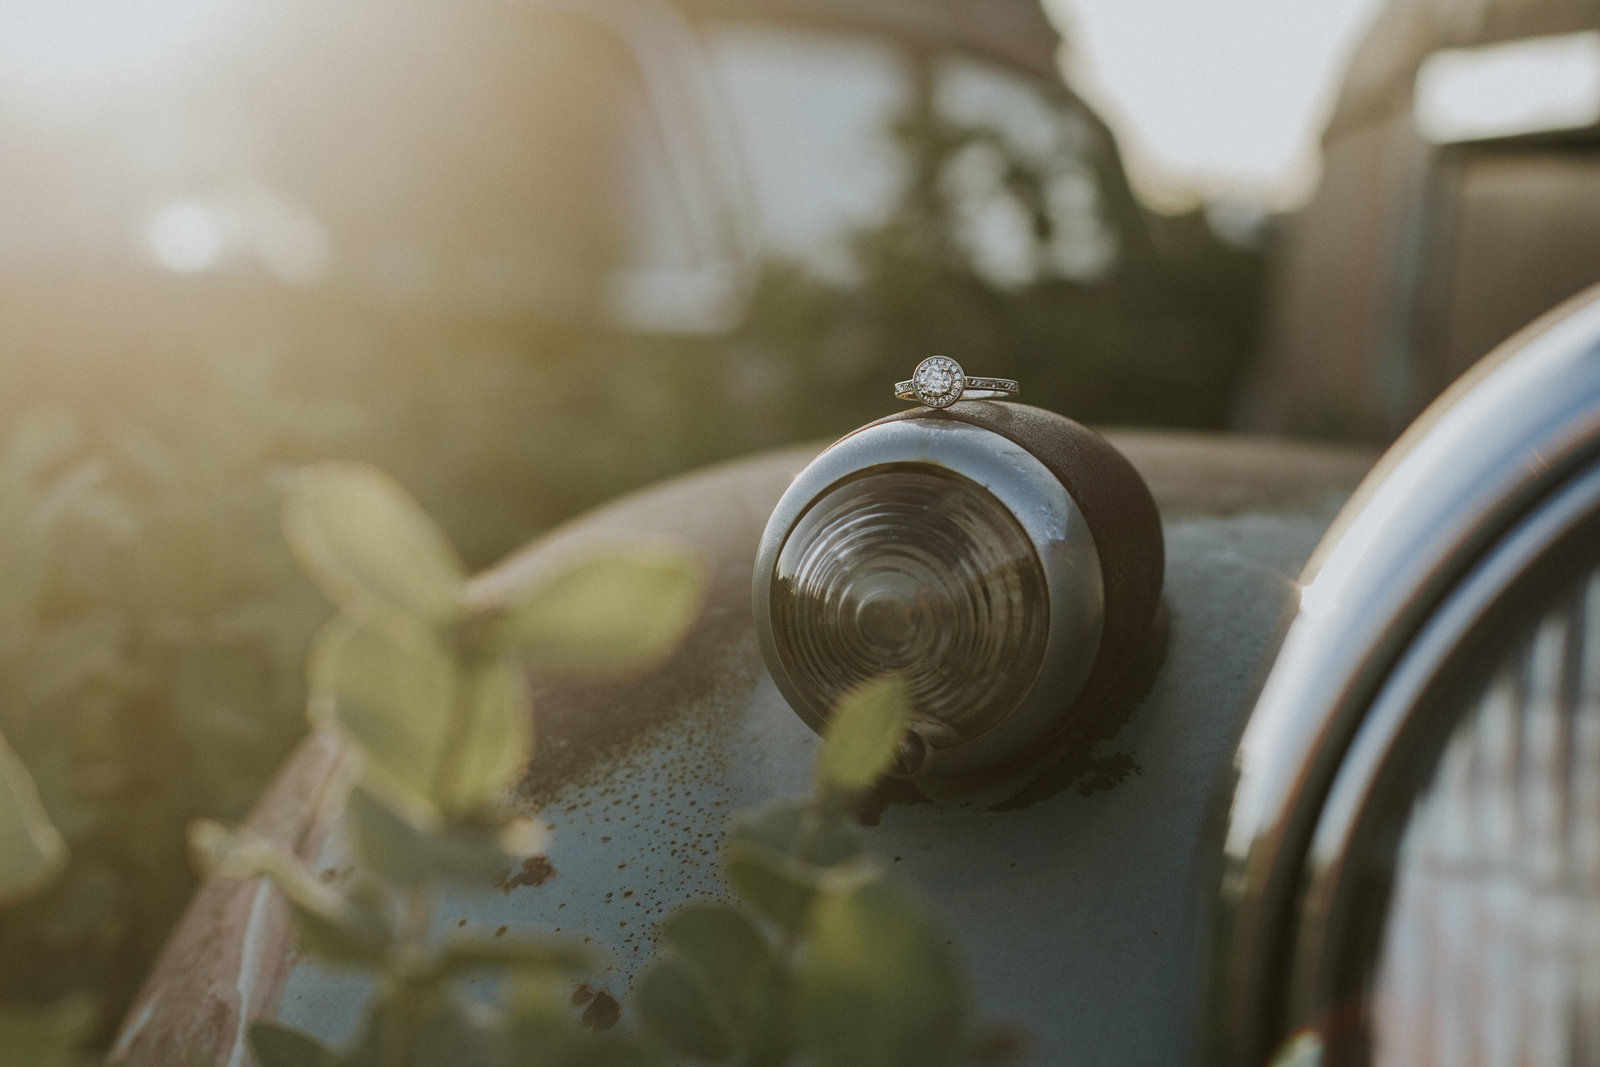 engagement | elizabeth street photography | engagement ring | old cars | LaMoure, ND